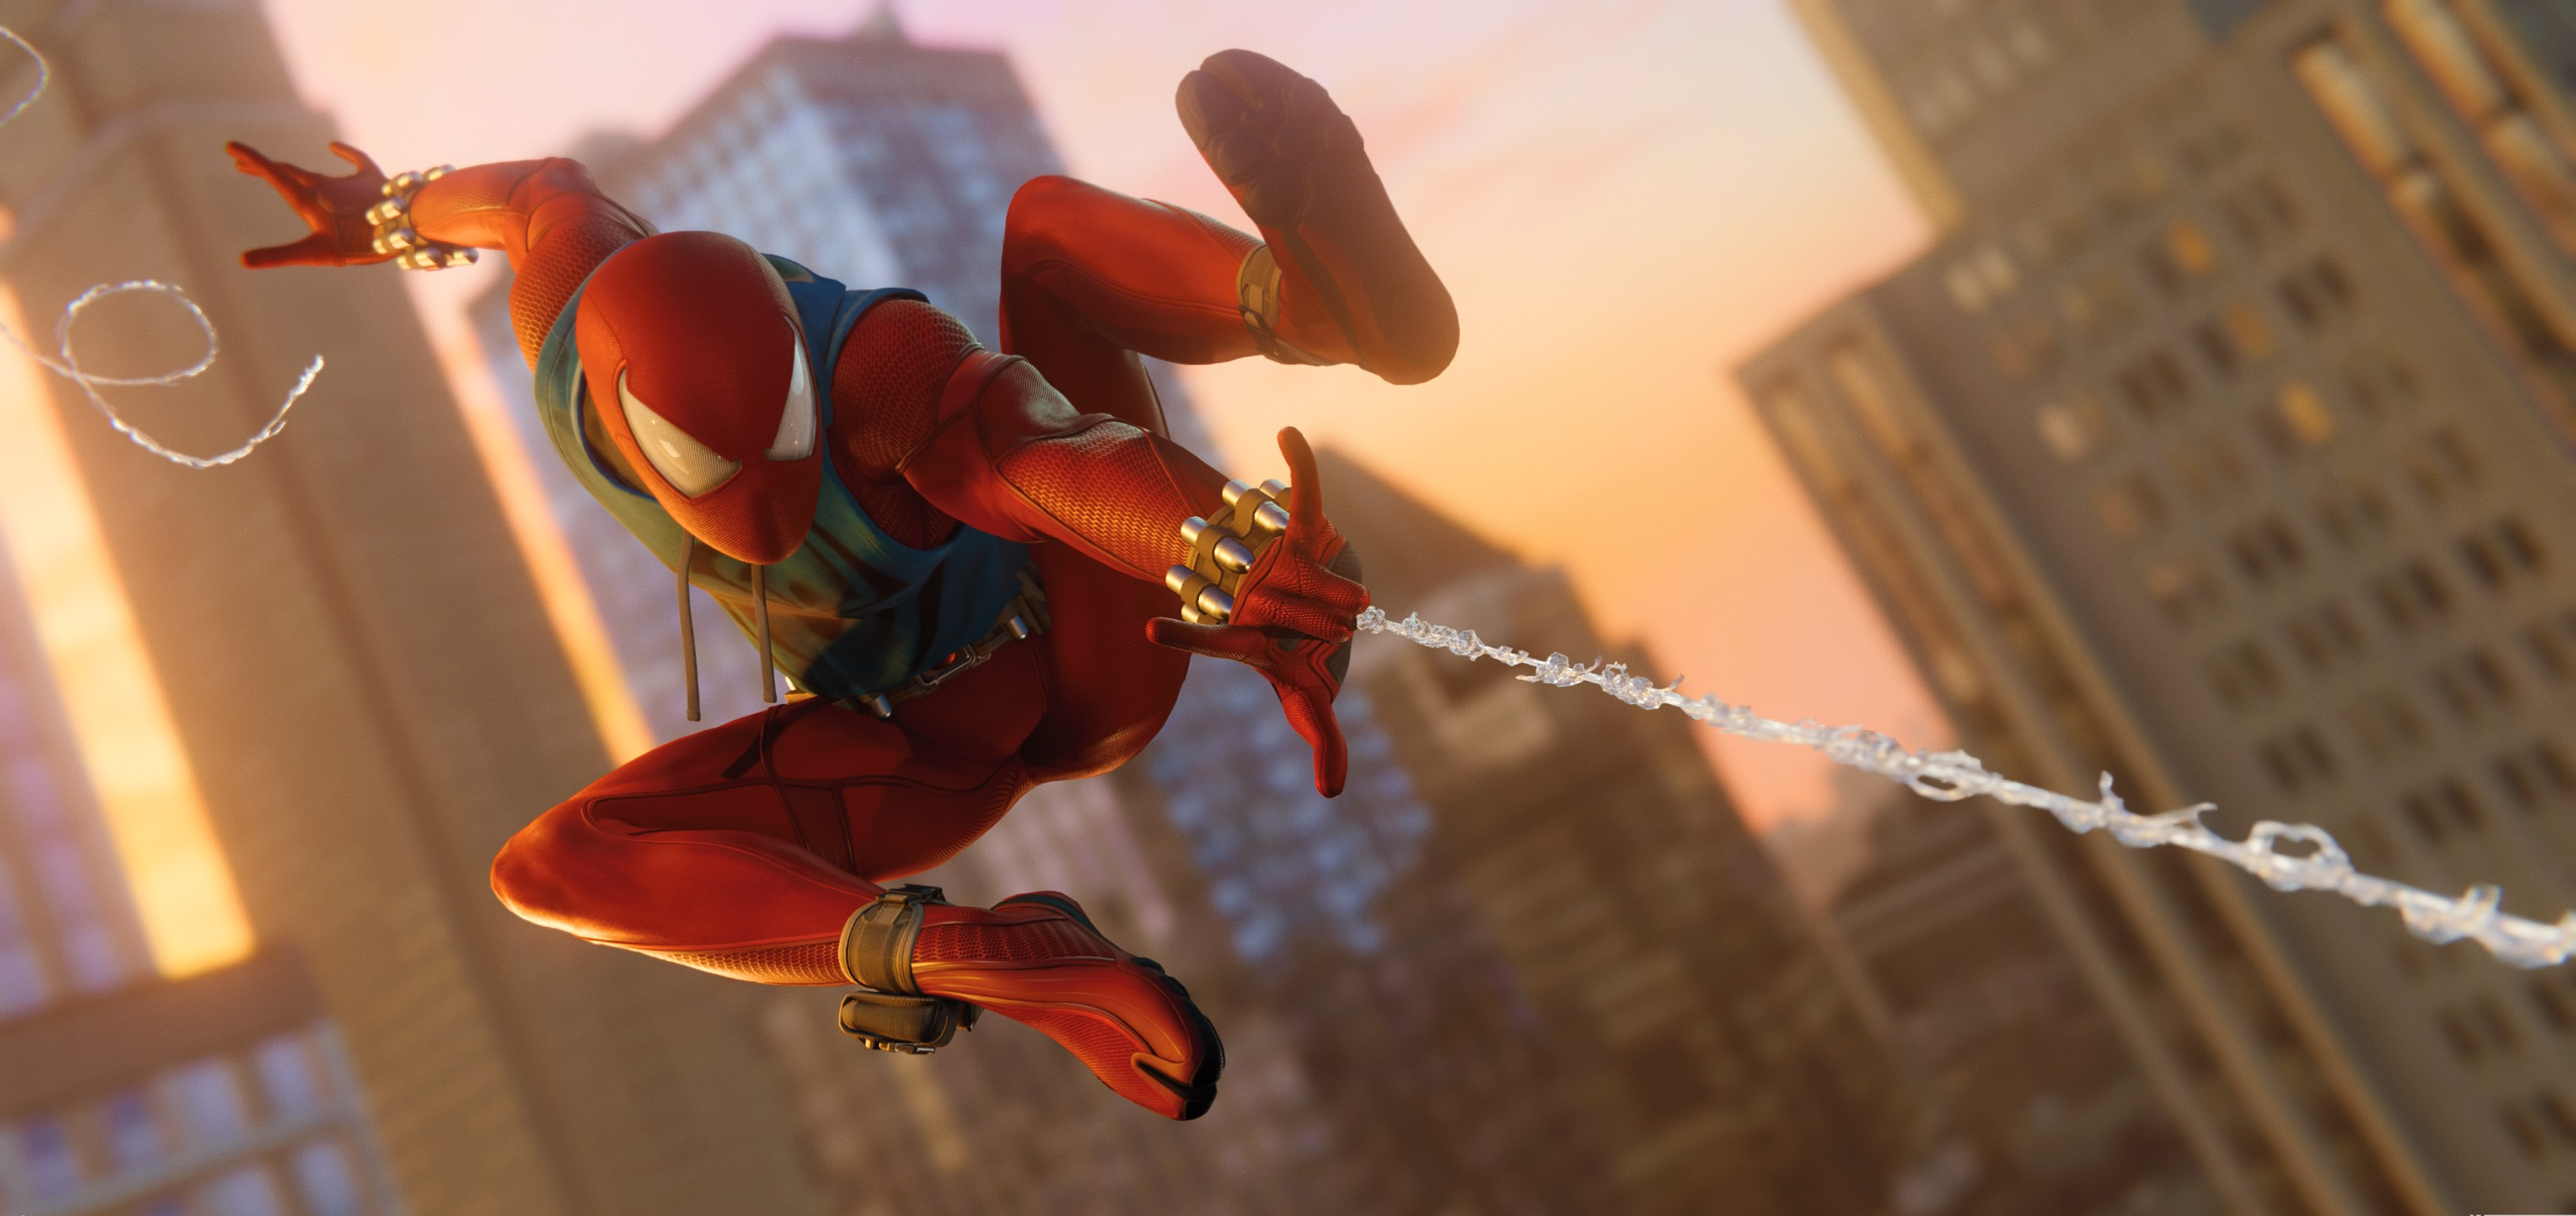 Iron Man 3d Wallpaper Android 1920x1080 Scarlet Spider In Ps4 Game 4k Laptop Full Hd